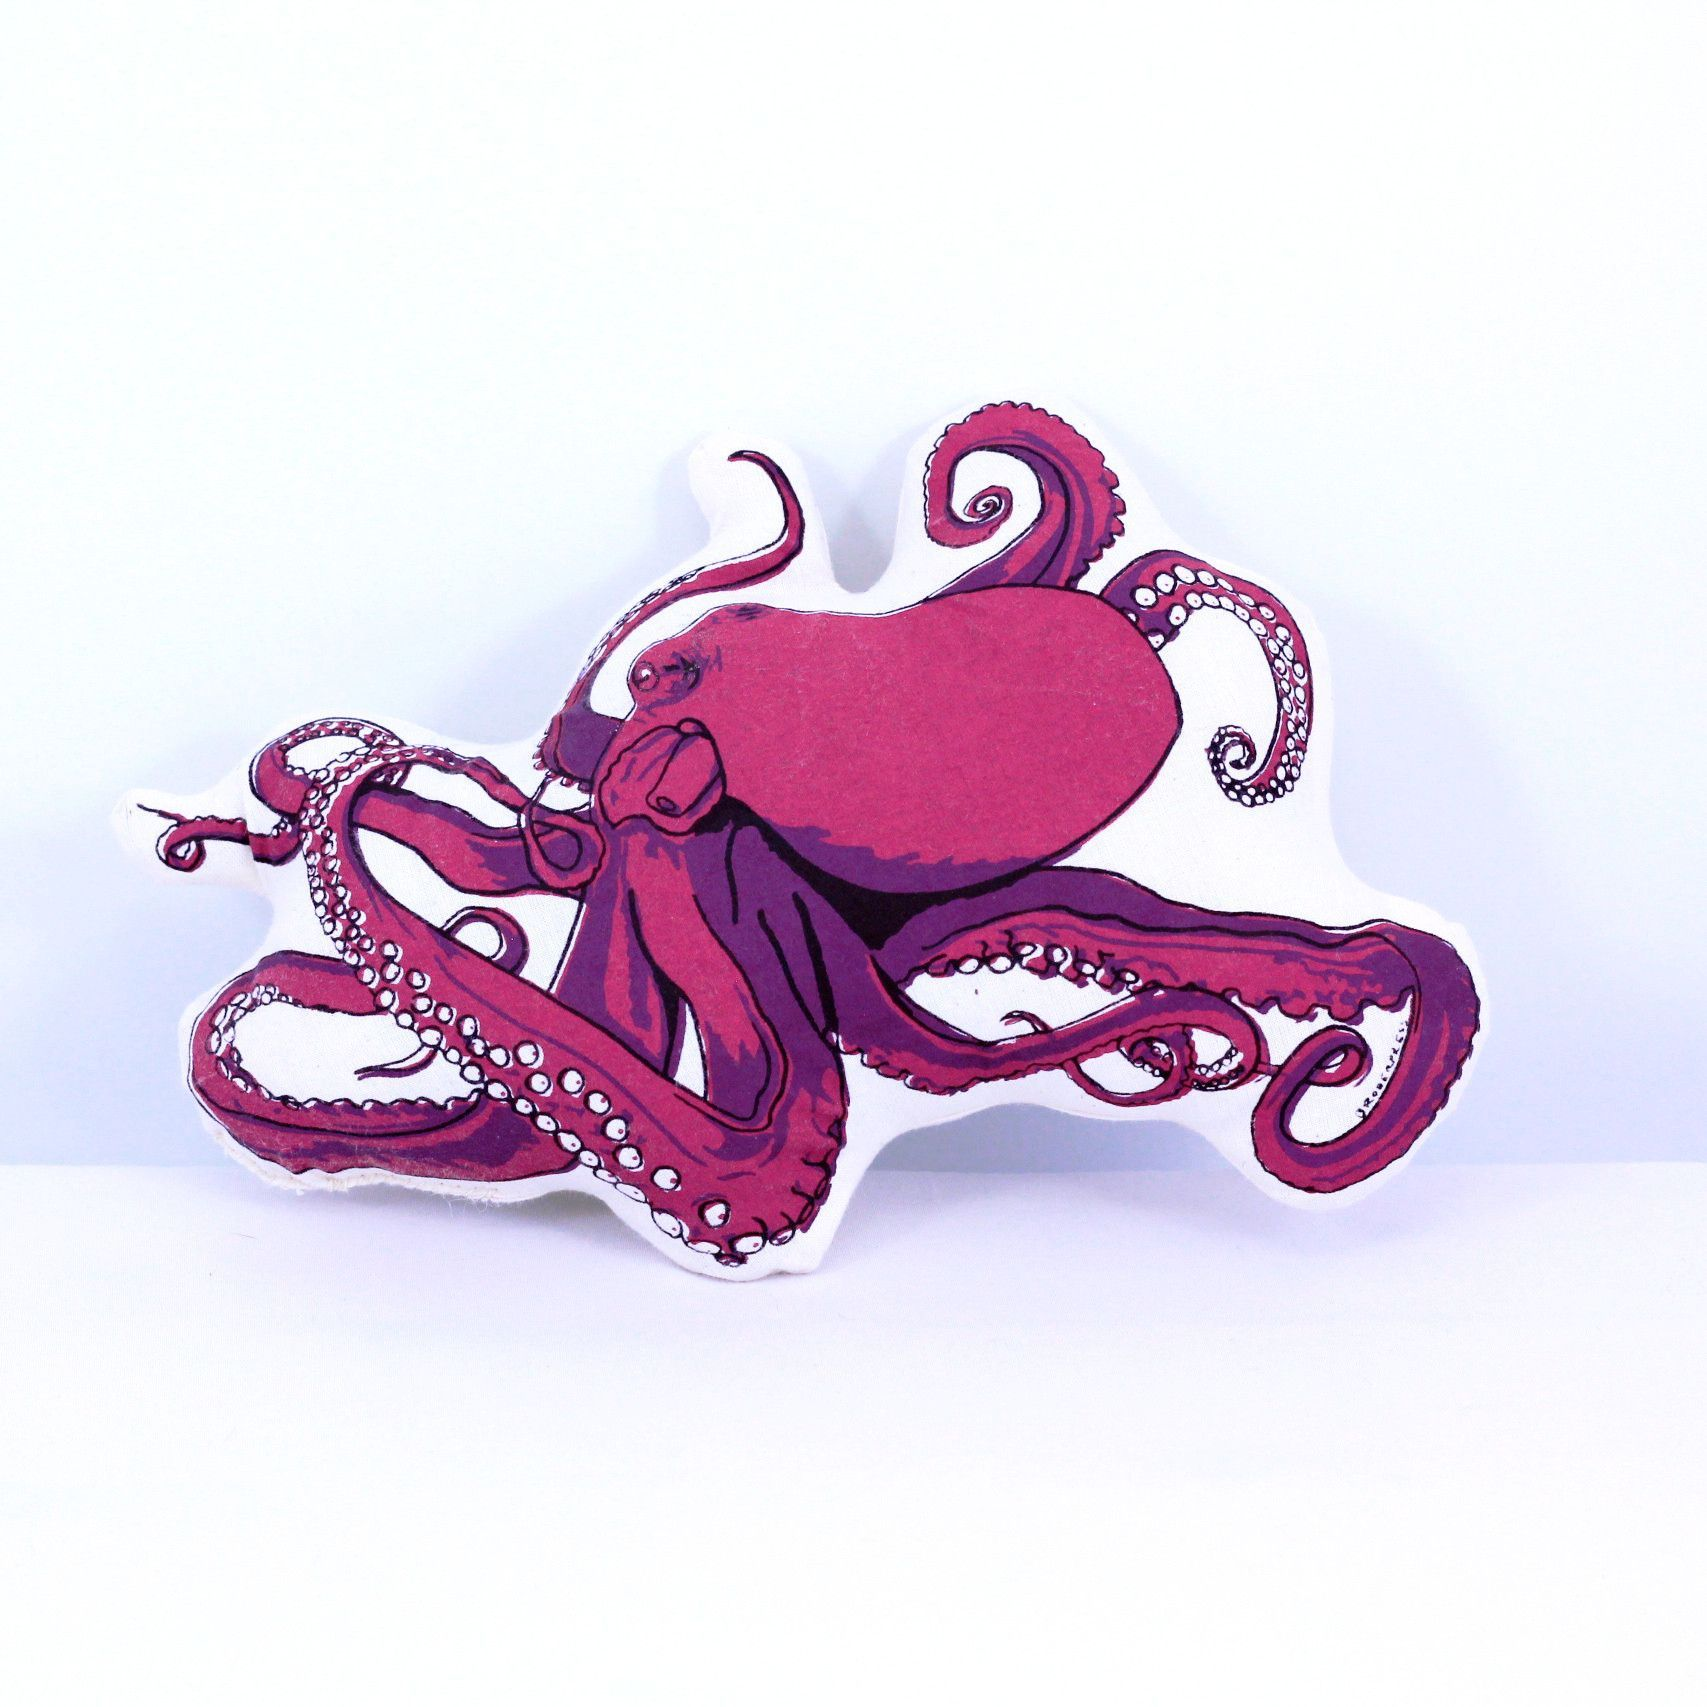 Plush Octopus Pillow & Toy